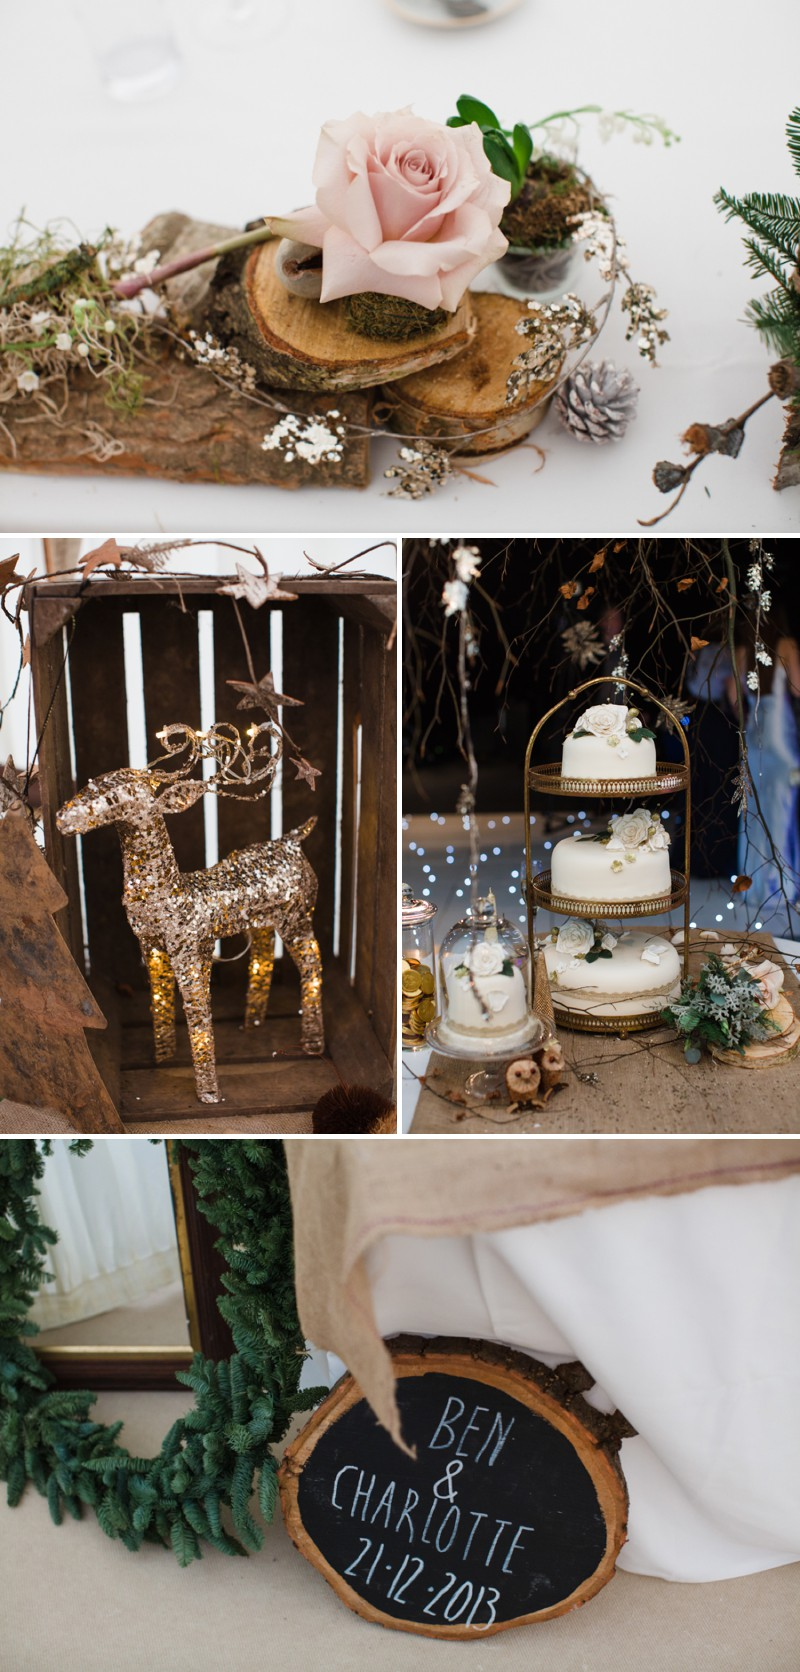 A Warm Winter Glamorous Rustic Wedding With A Jenny Packham Dress And Blue Toned Bouquet With Photography By Lucy Davenport._0010